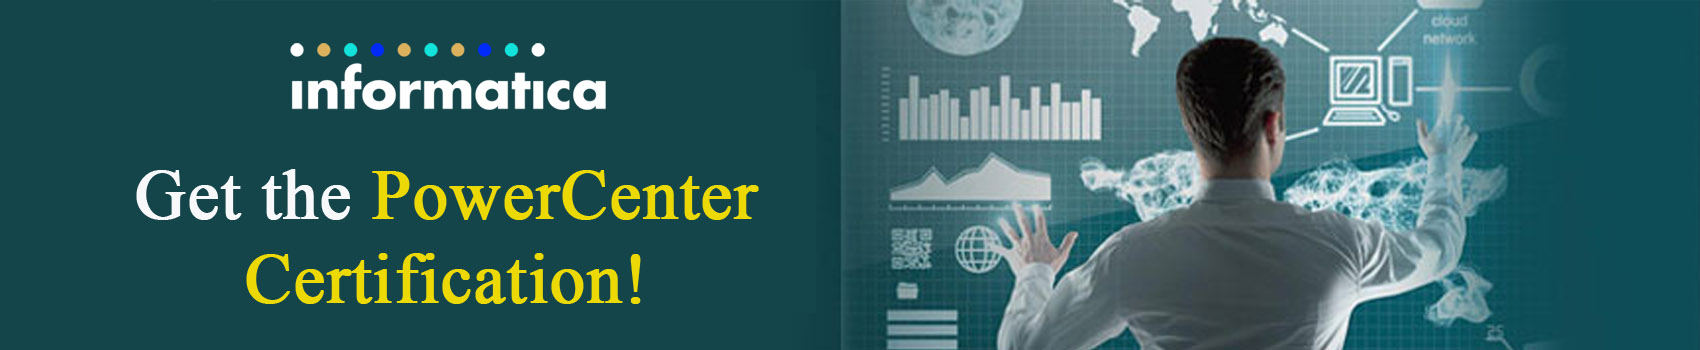 Informatica Powercenter Training and Certification Proideators